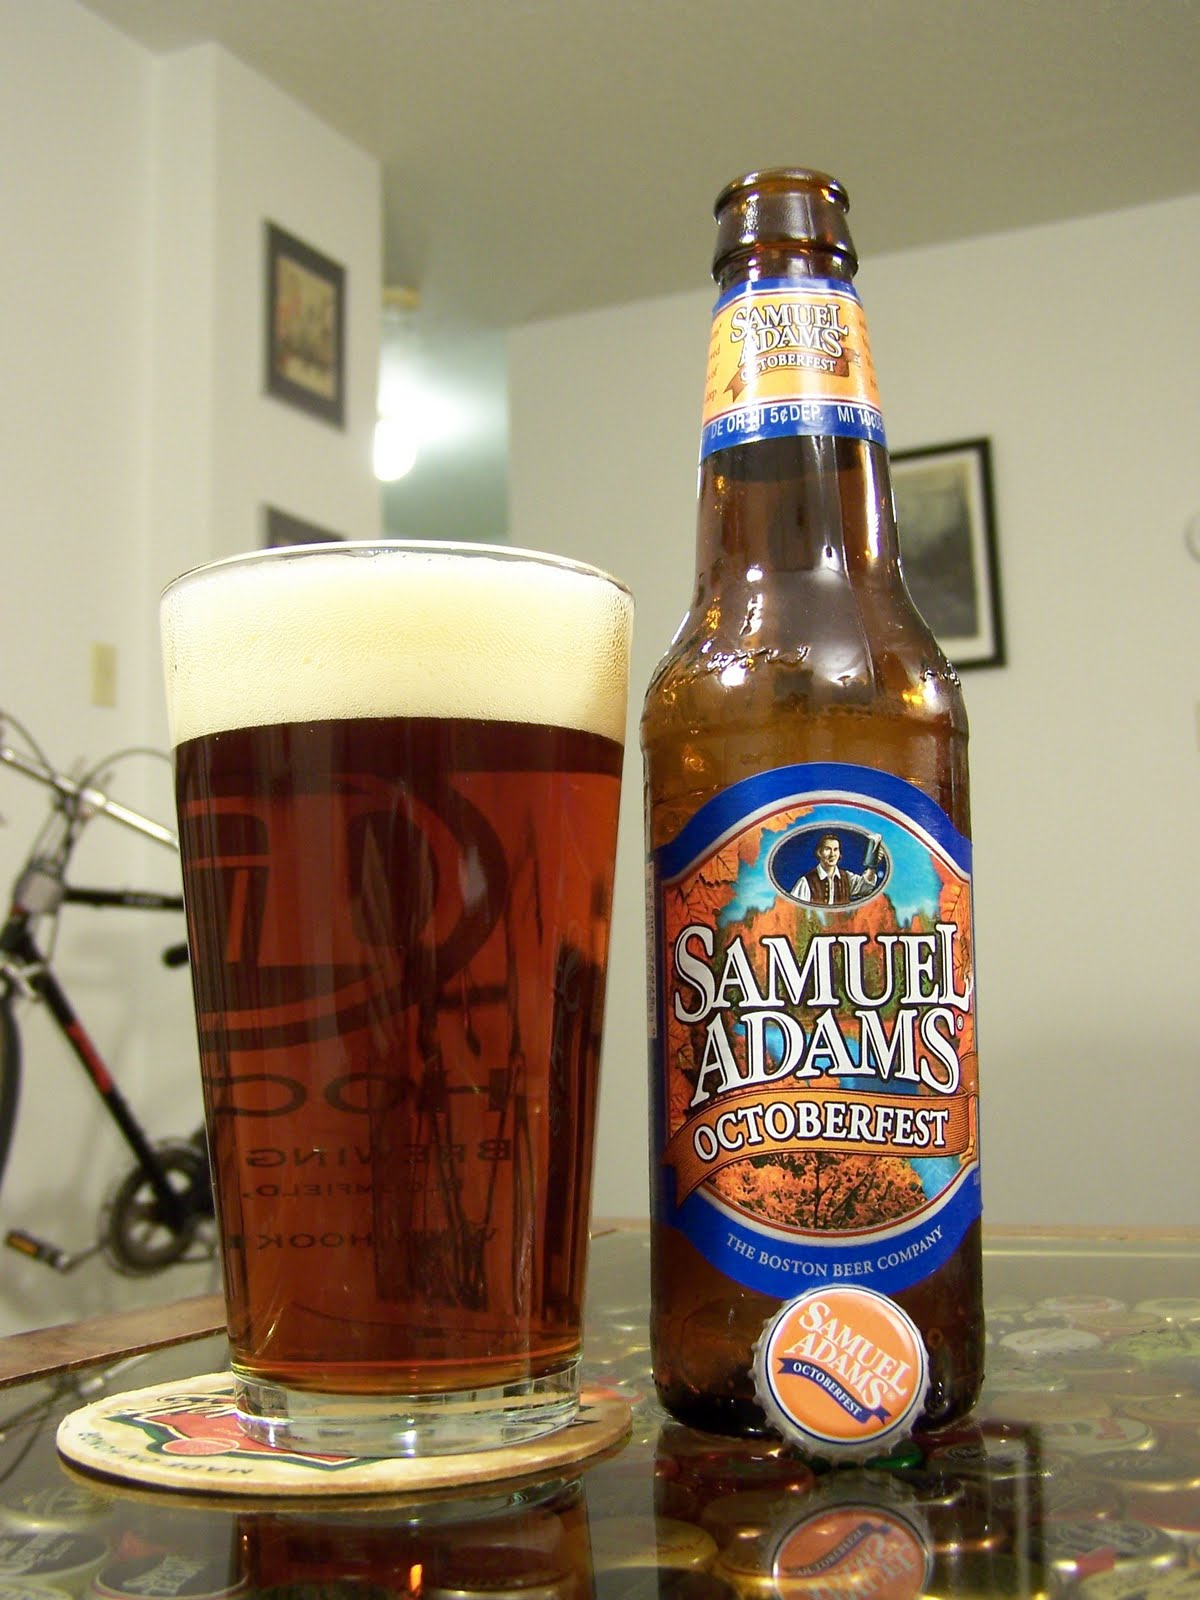 boston beer company 3 essay Boston beer company: light beer decisionbackground information: the boston beer company, which was founded in 1984, had a very diversified thriving product line which entailed about twenty different kinds of beers.